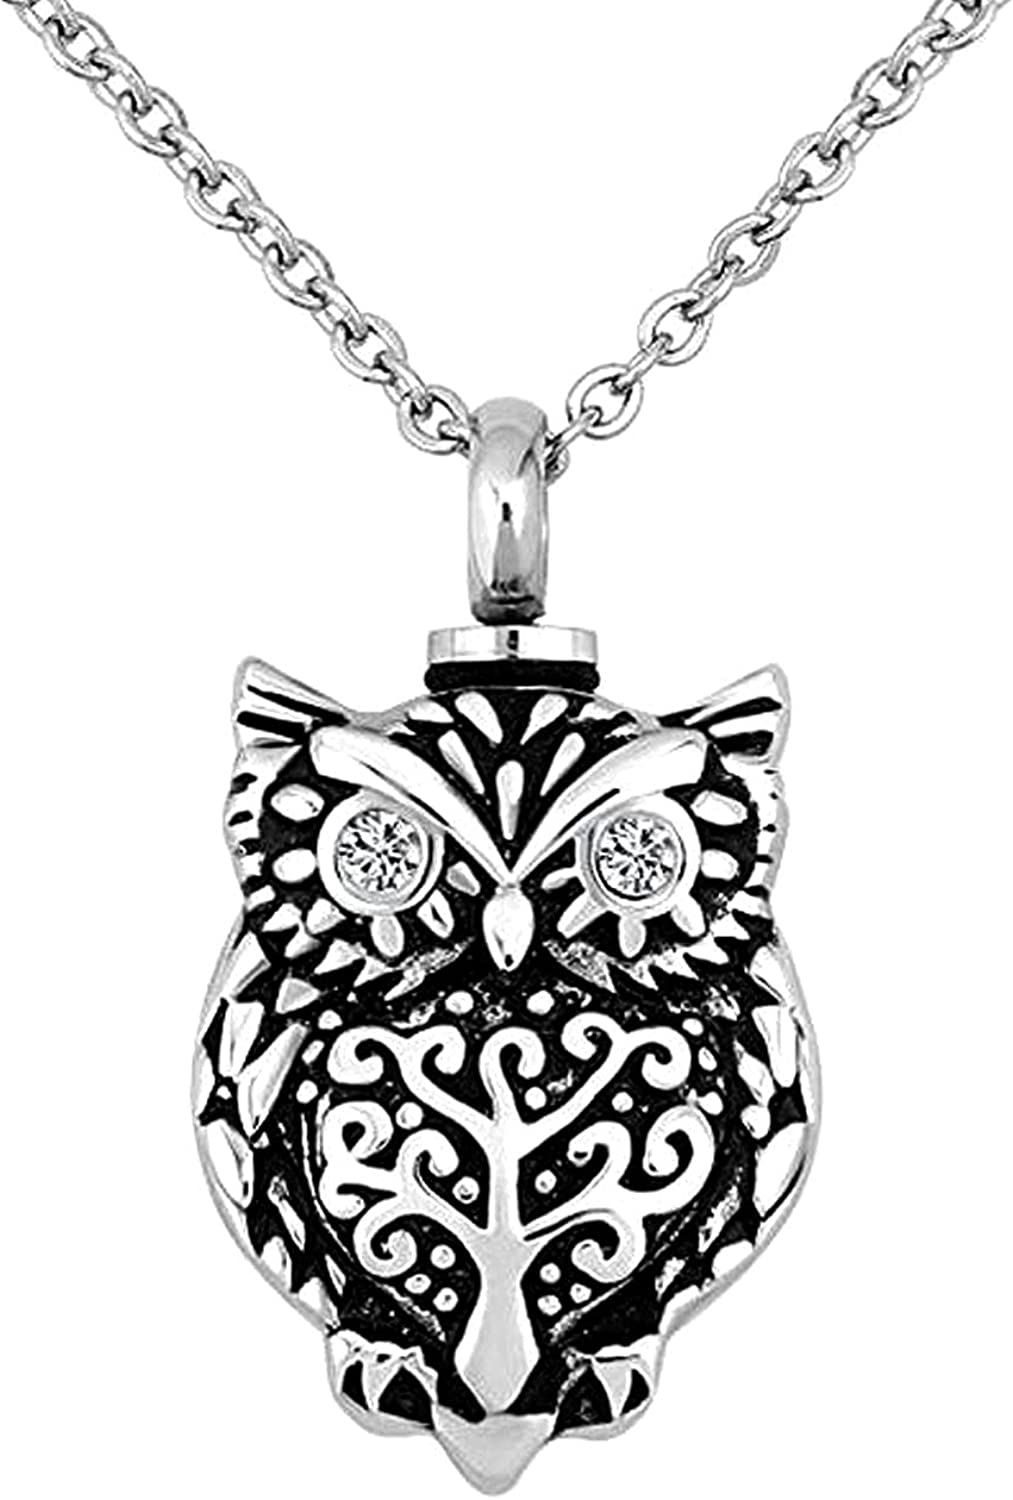 KunBead Heart Urn Pendant Necklace for Ashes Owl Memorial Keepsake Cremation Jewelry for Ashes